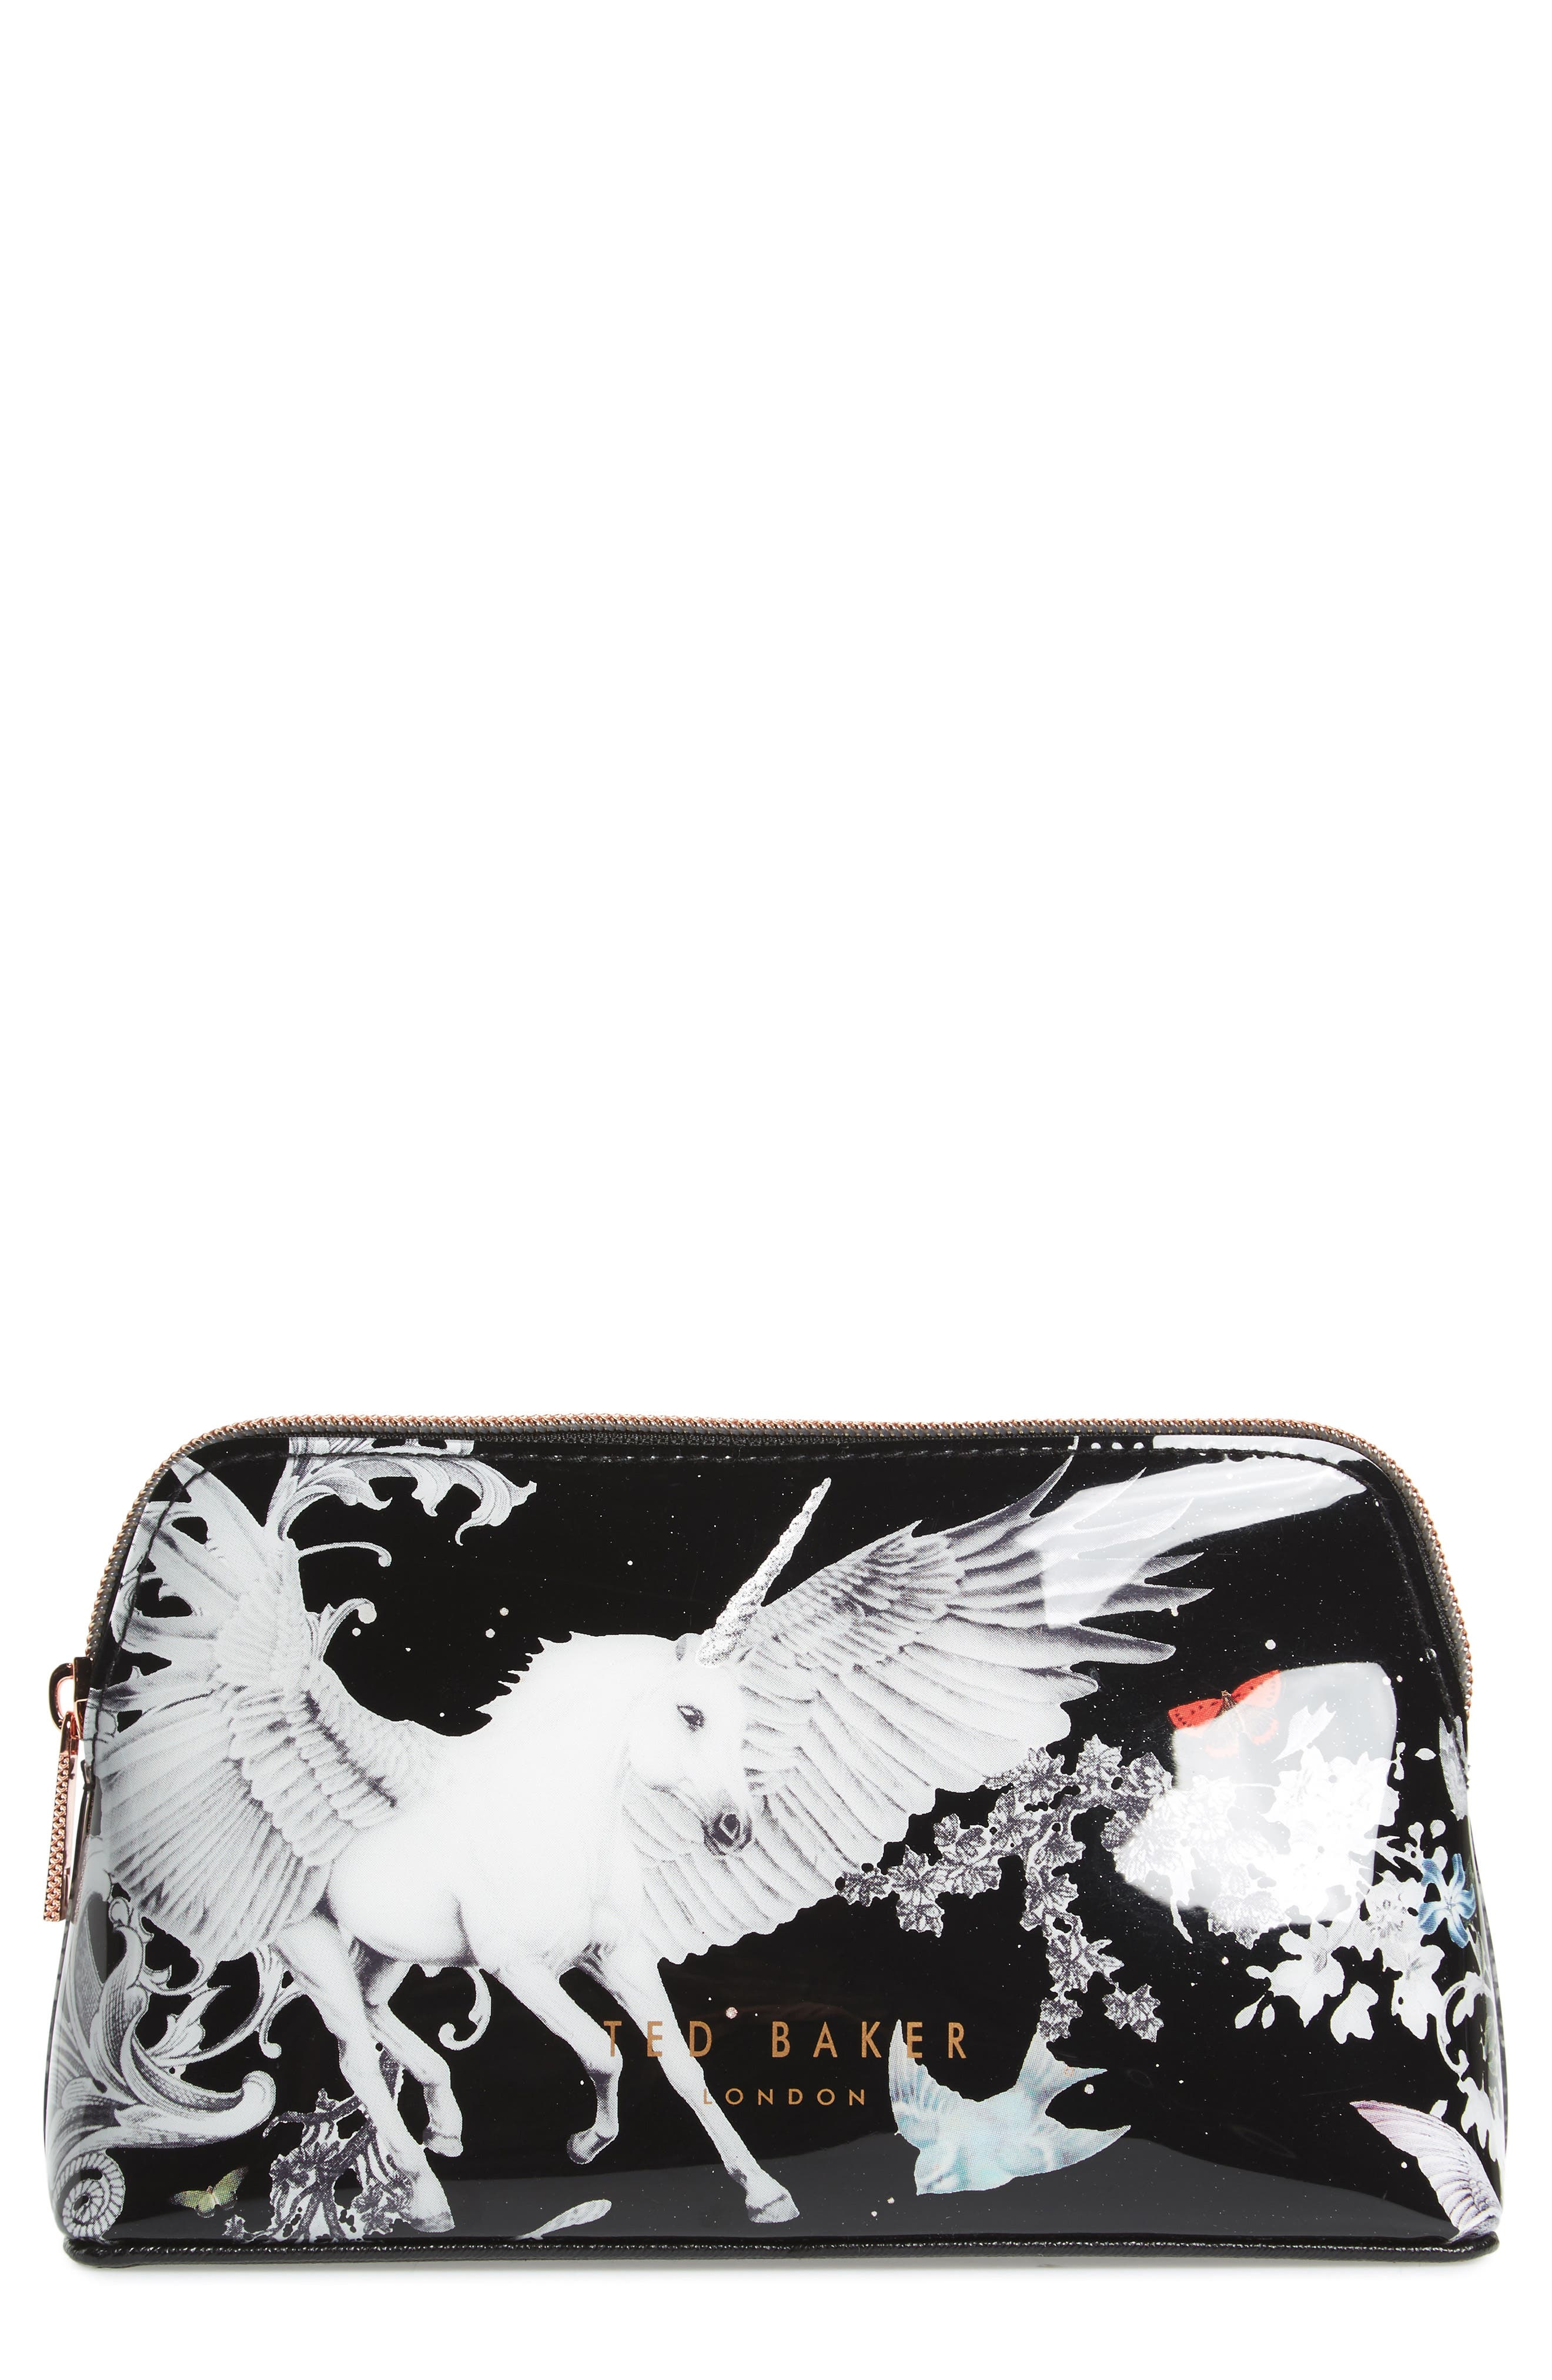 Alternate Image 1 Selected - Ted Baker London Marissa Enchant Cosmetics Case